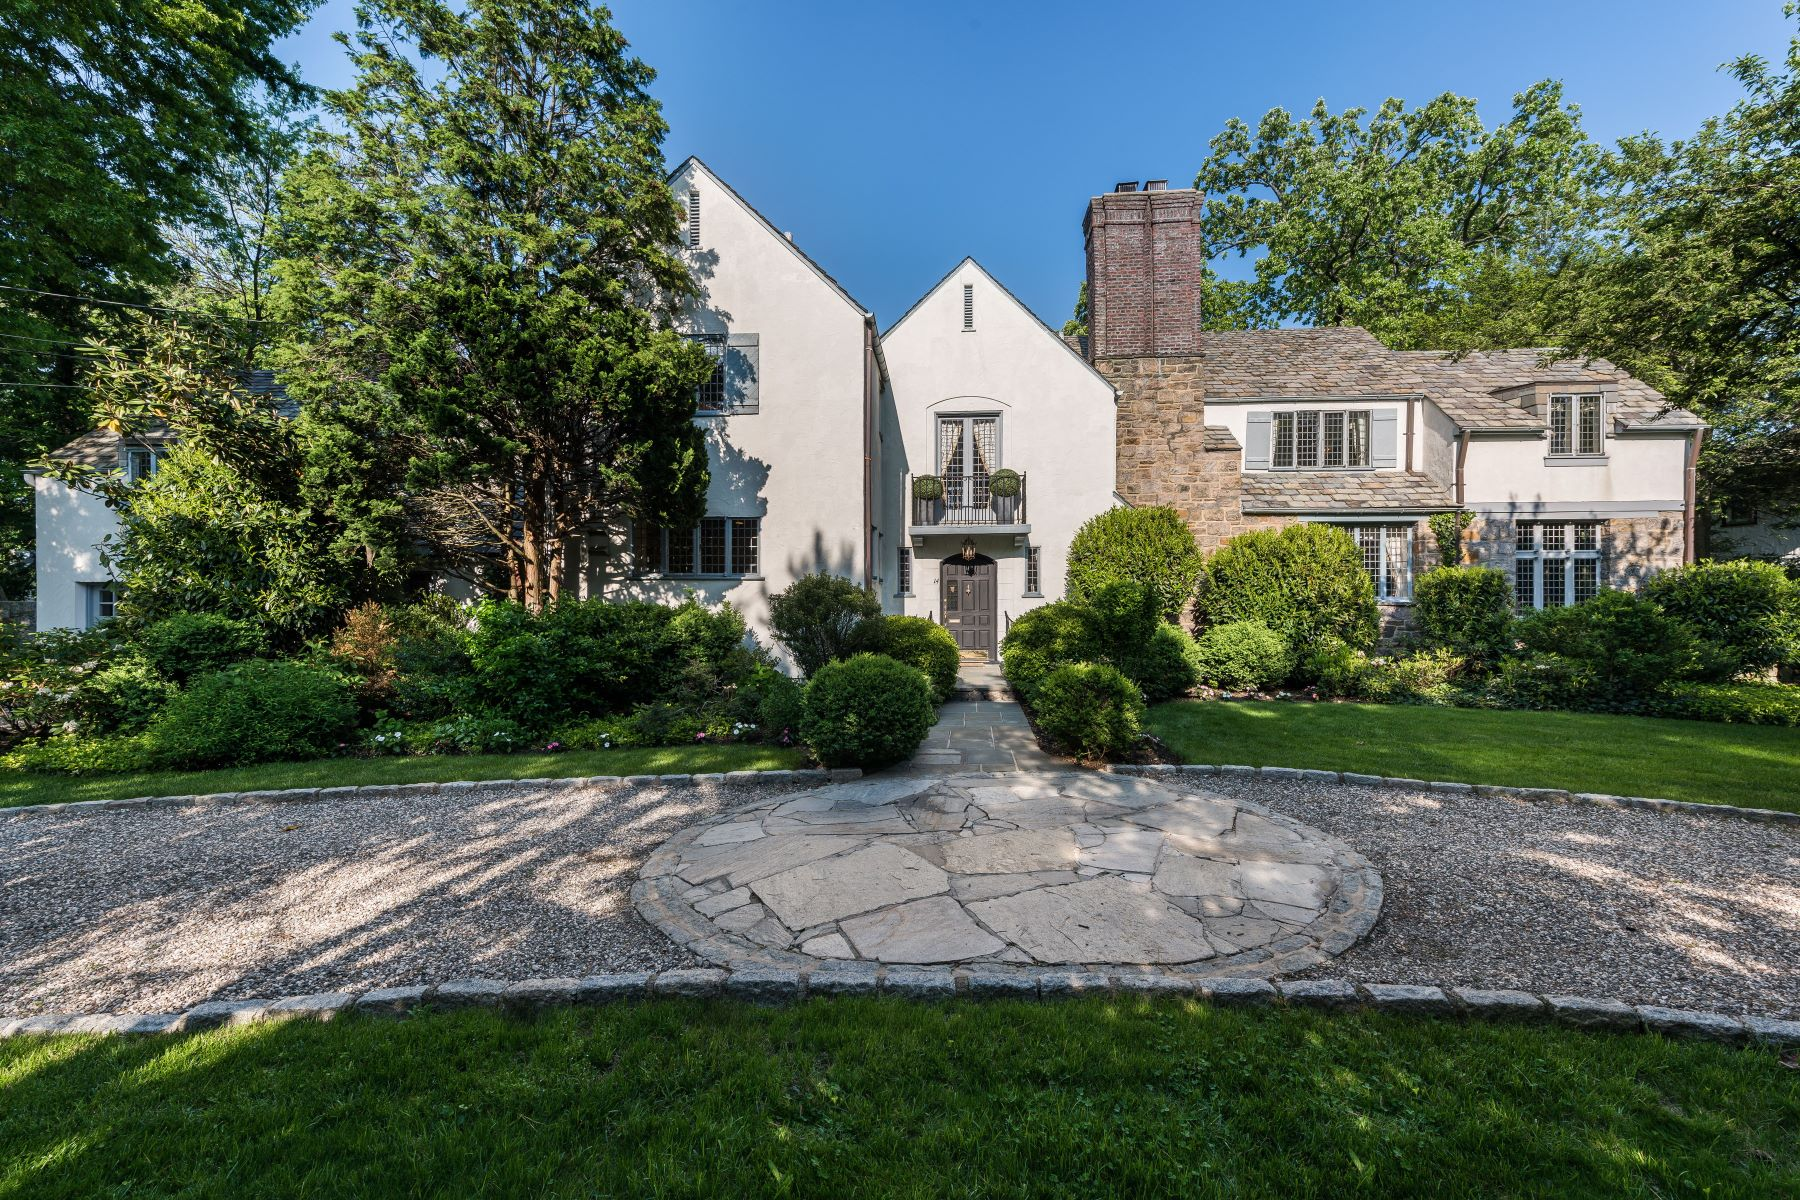 Maison unifamiliale pour l Vente à George Root designed English Manor Country Home in Bronxville Village 14 Courseview Road Bronxville, New York 10708 États-Unis